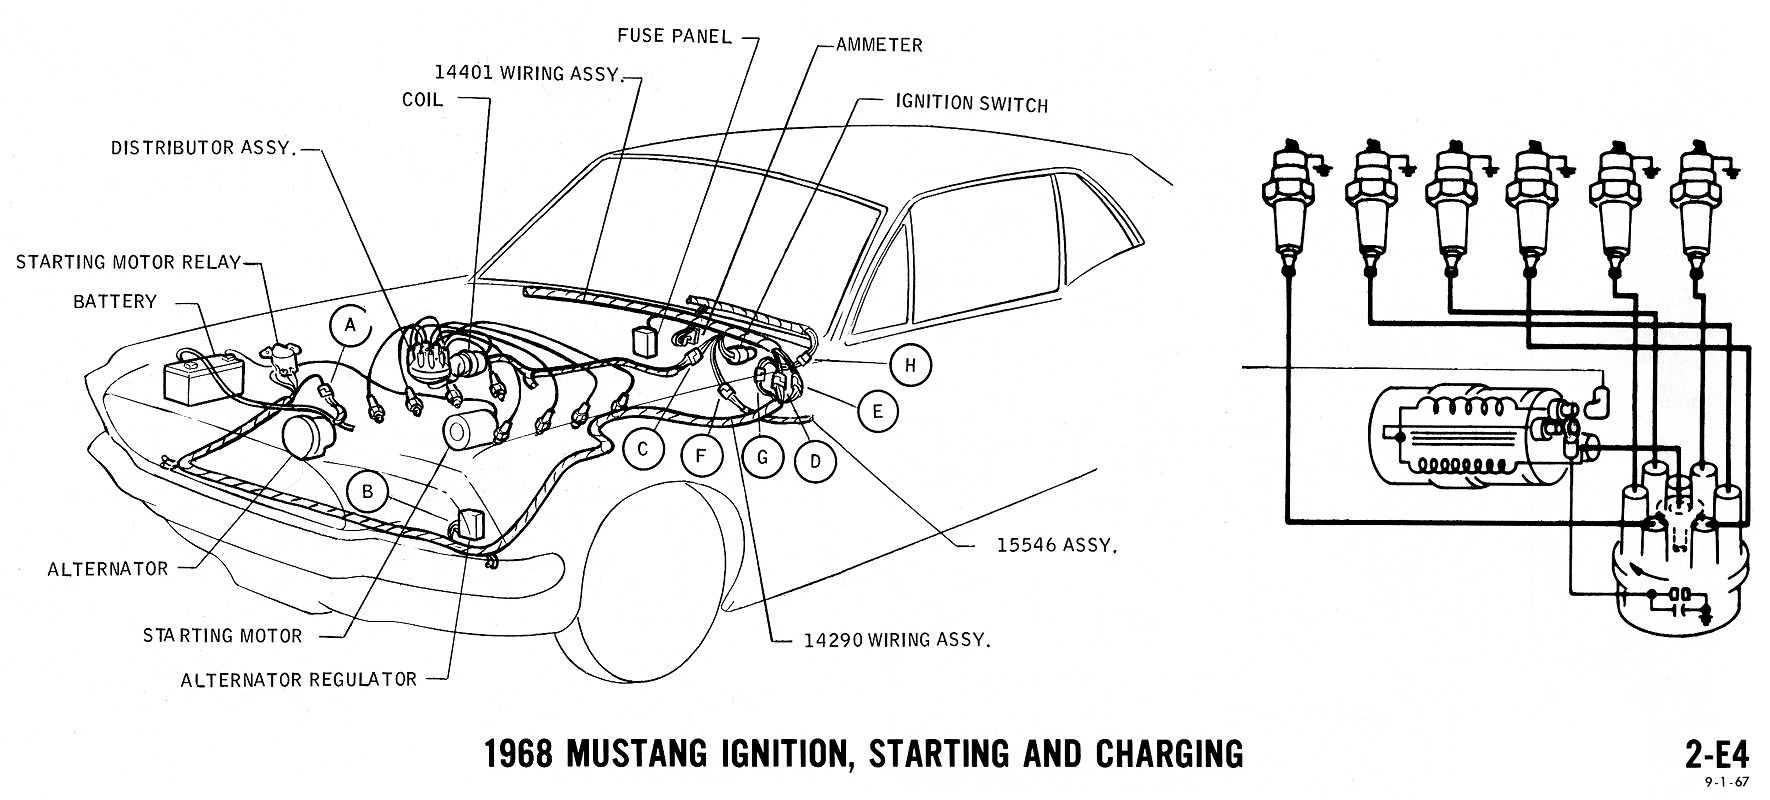 1968 Mustang Wiring Diagrams Evolving Software Mack Air Ke Diagram Charging Starting